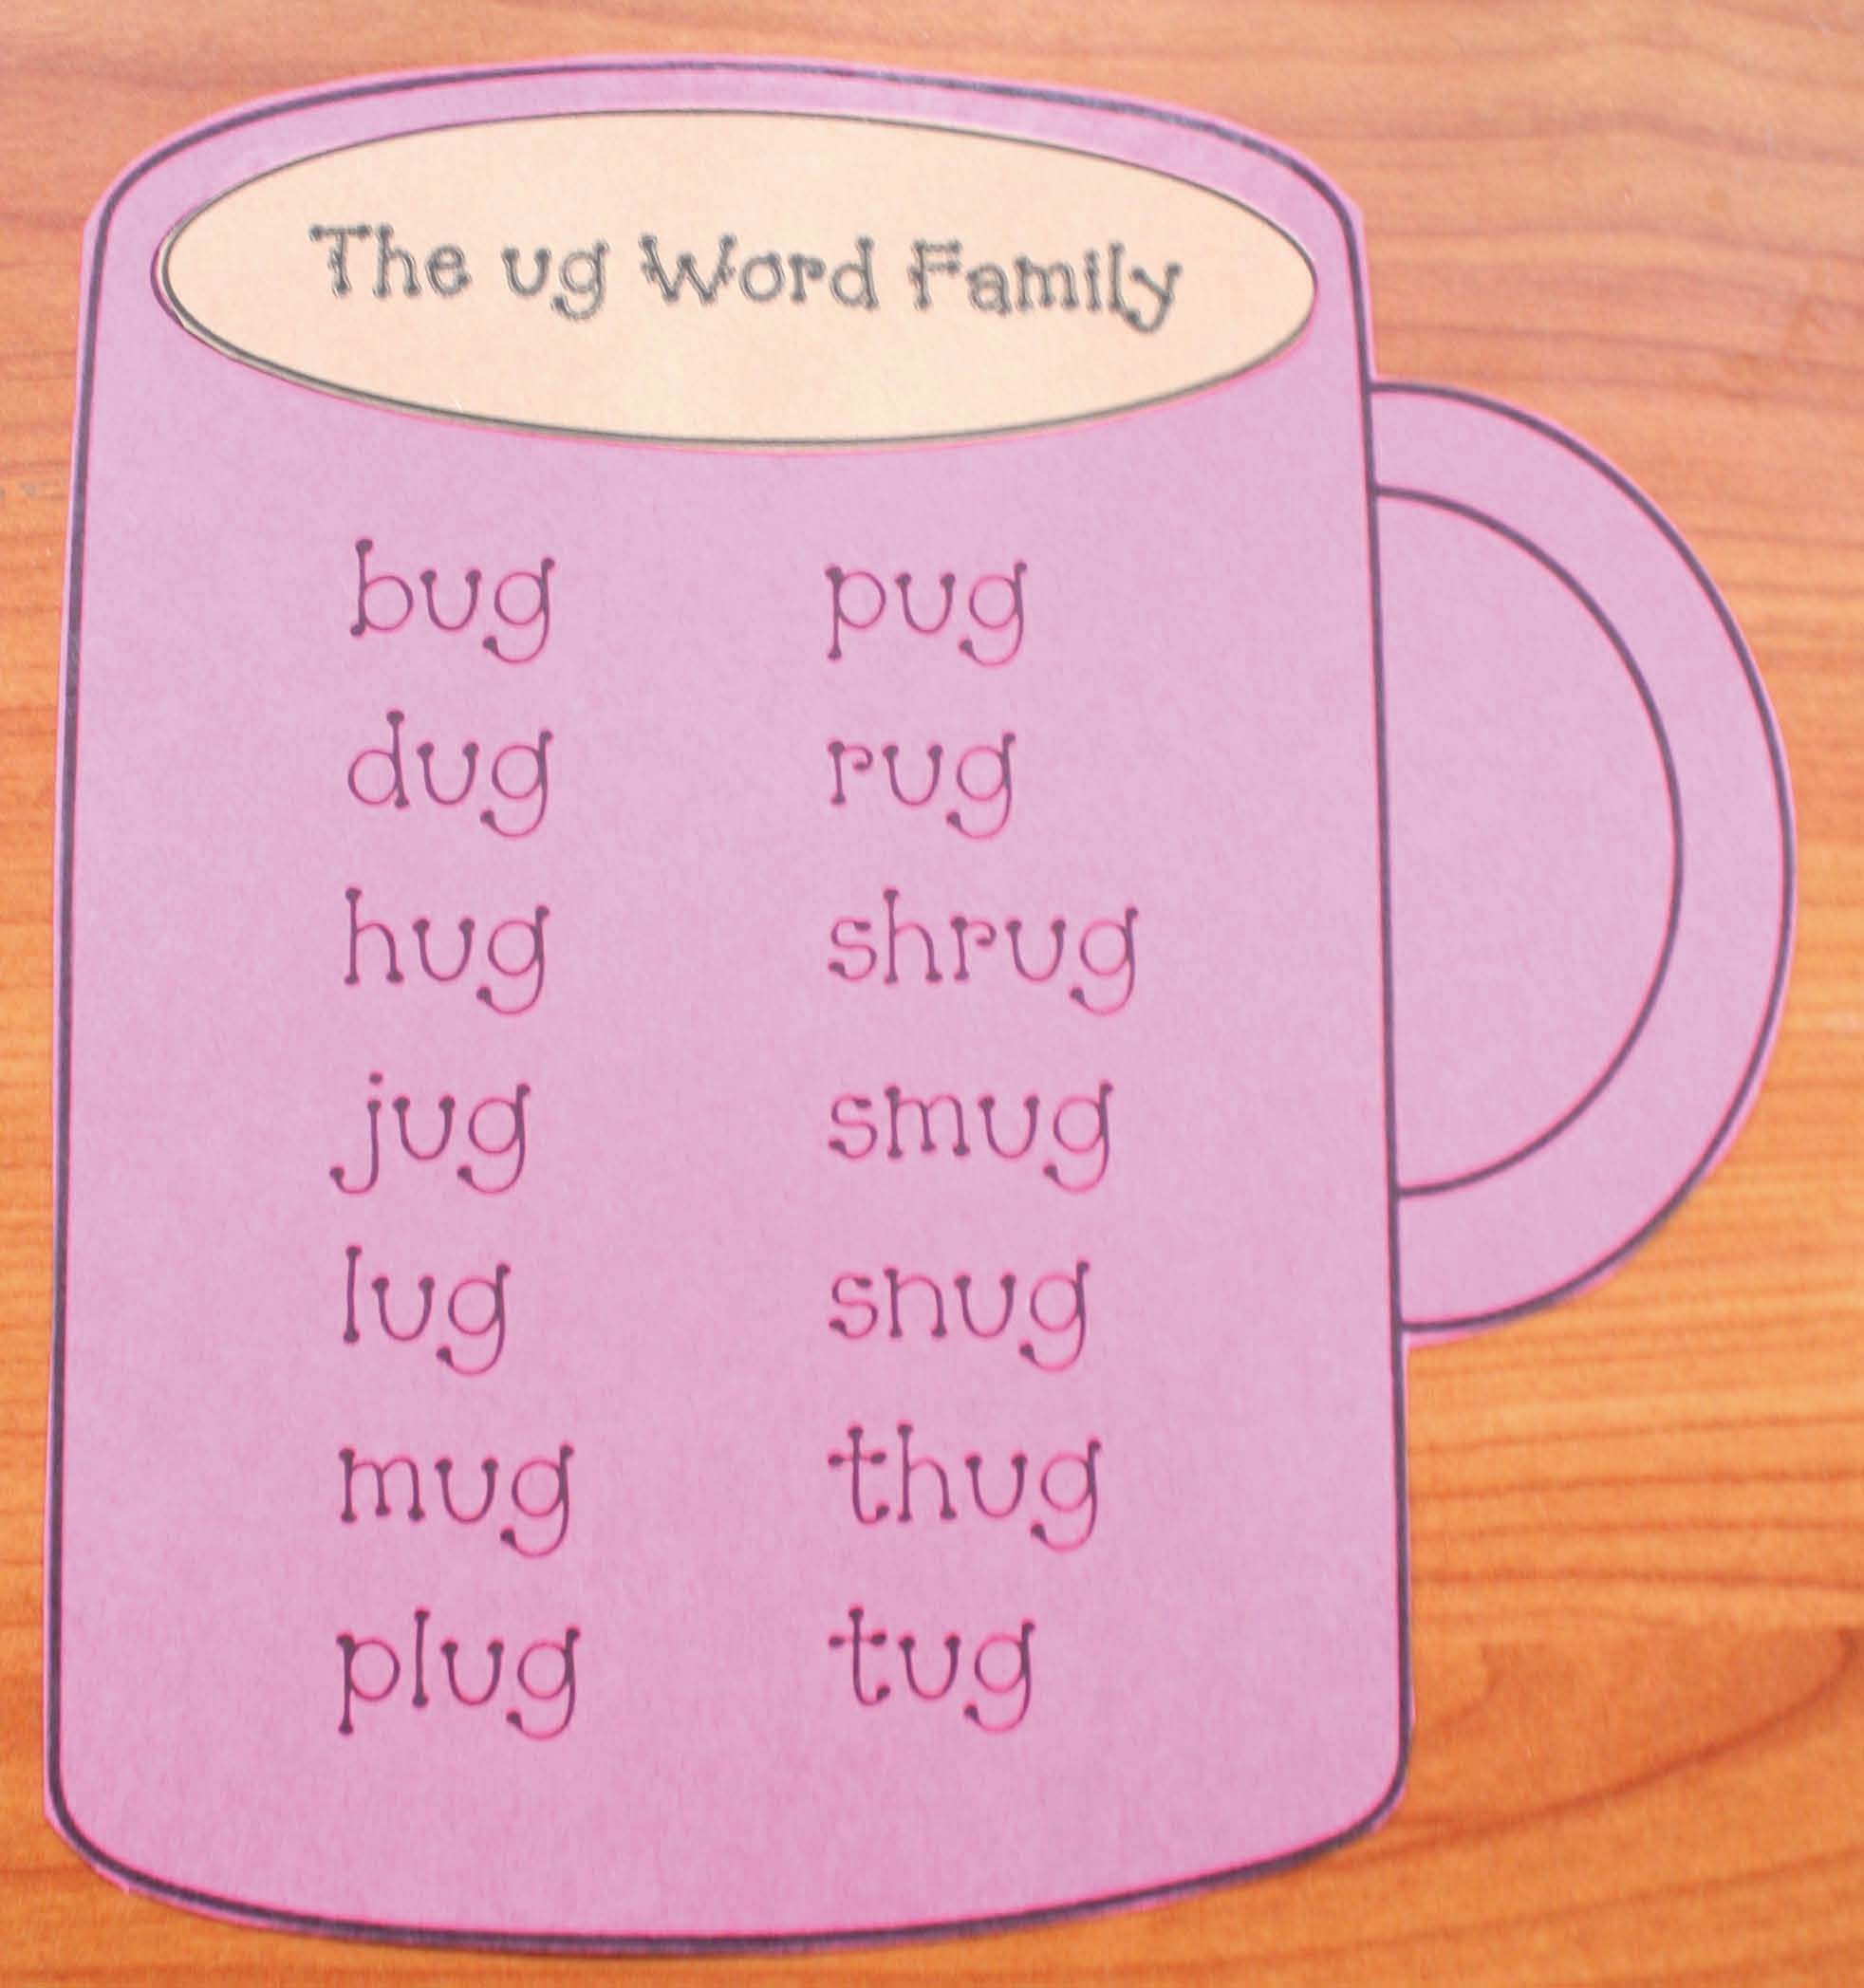 hot chocolate activities, ug word family activities, word family activities, word families, ug word family, mug template, cylinder crafts, cylinder poster, cylinder activities, 3D shape activities, january bulletin boards, winter bulletin board ideas, ug word family list of words